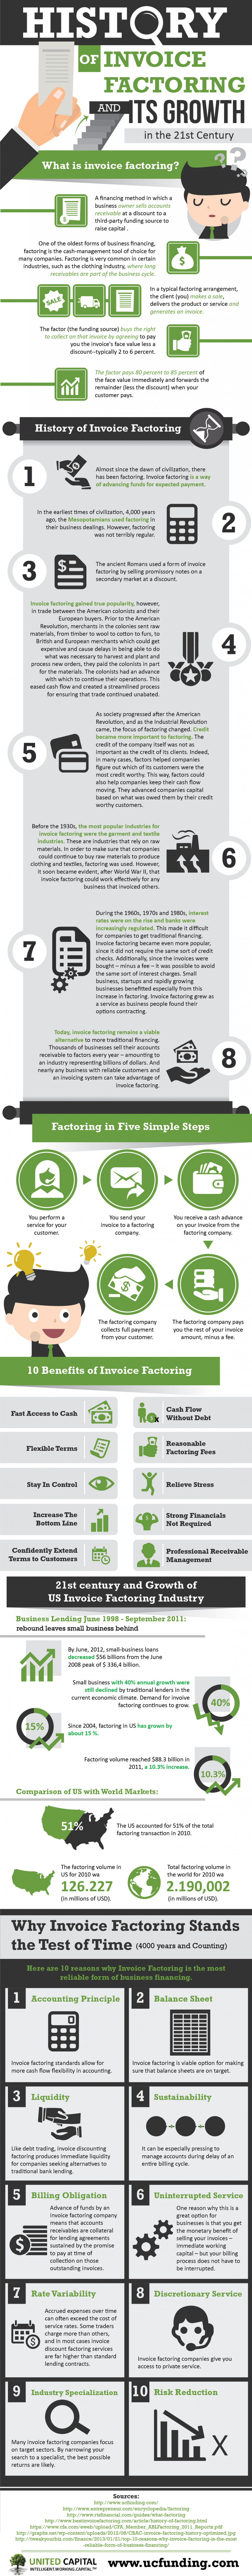 History of Invoice Factoring & its Growth Infographic